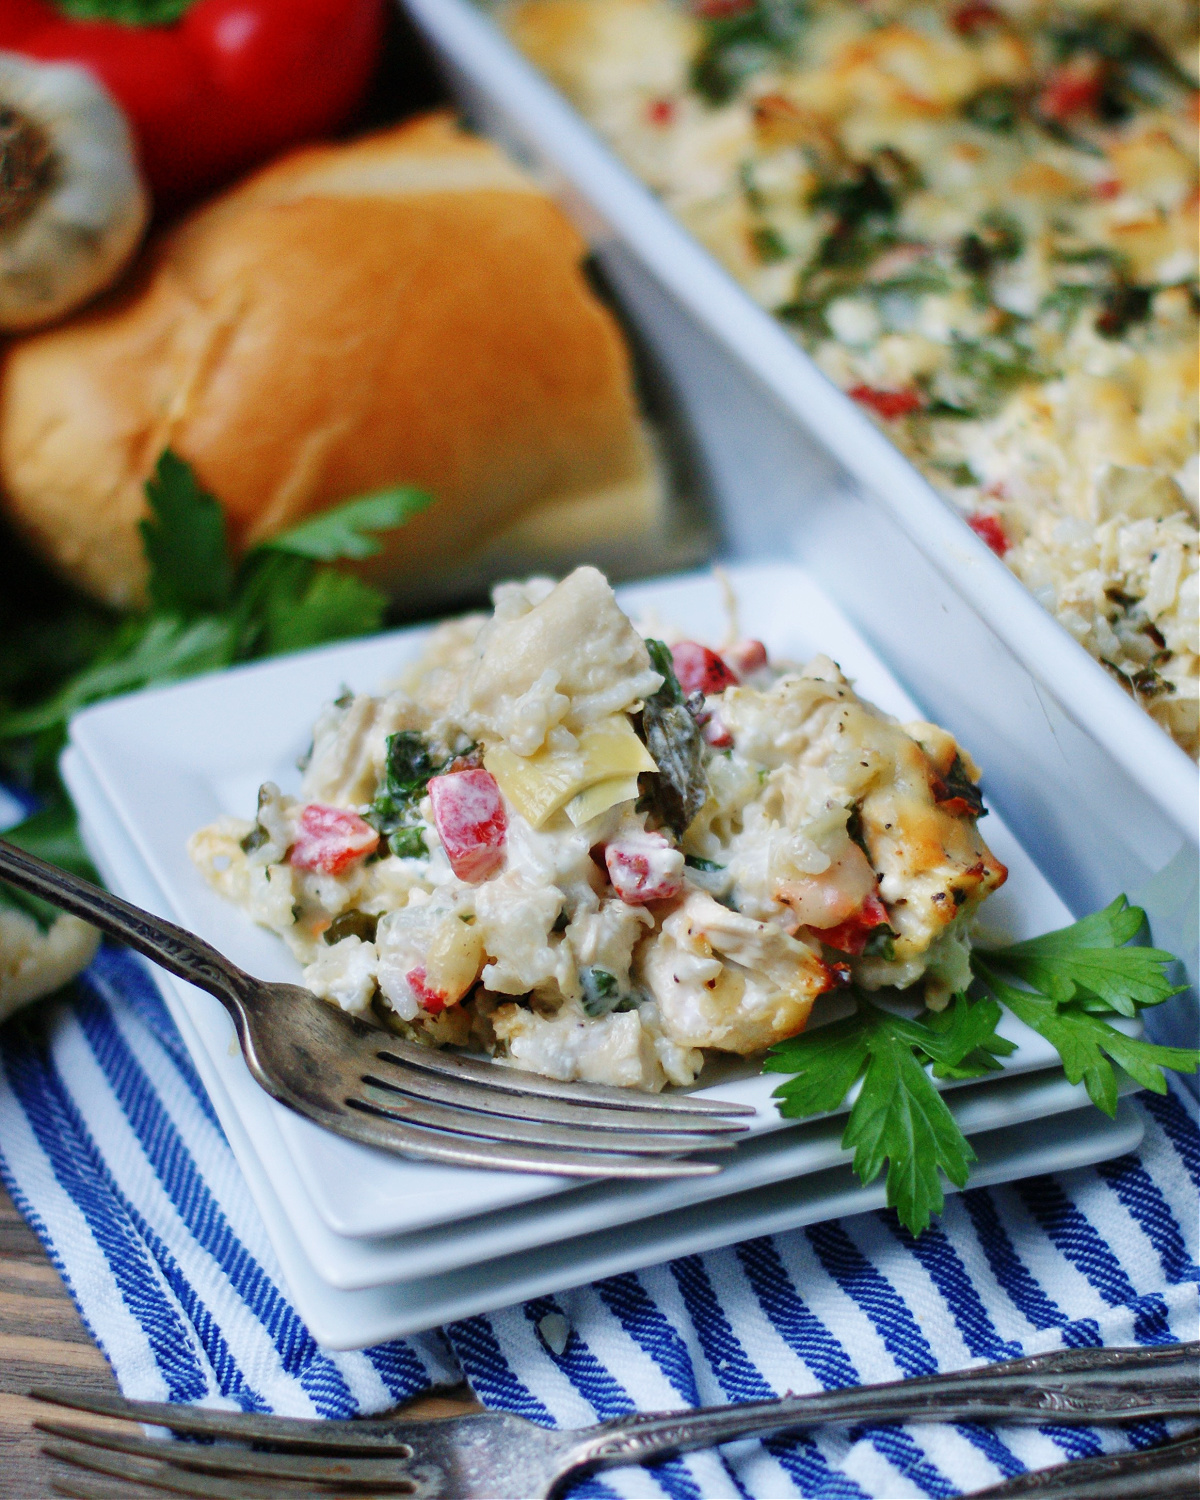 An example of how to serve creamy spinach artichoke casserole with rice as a meal